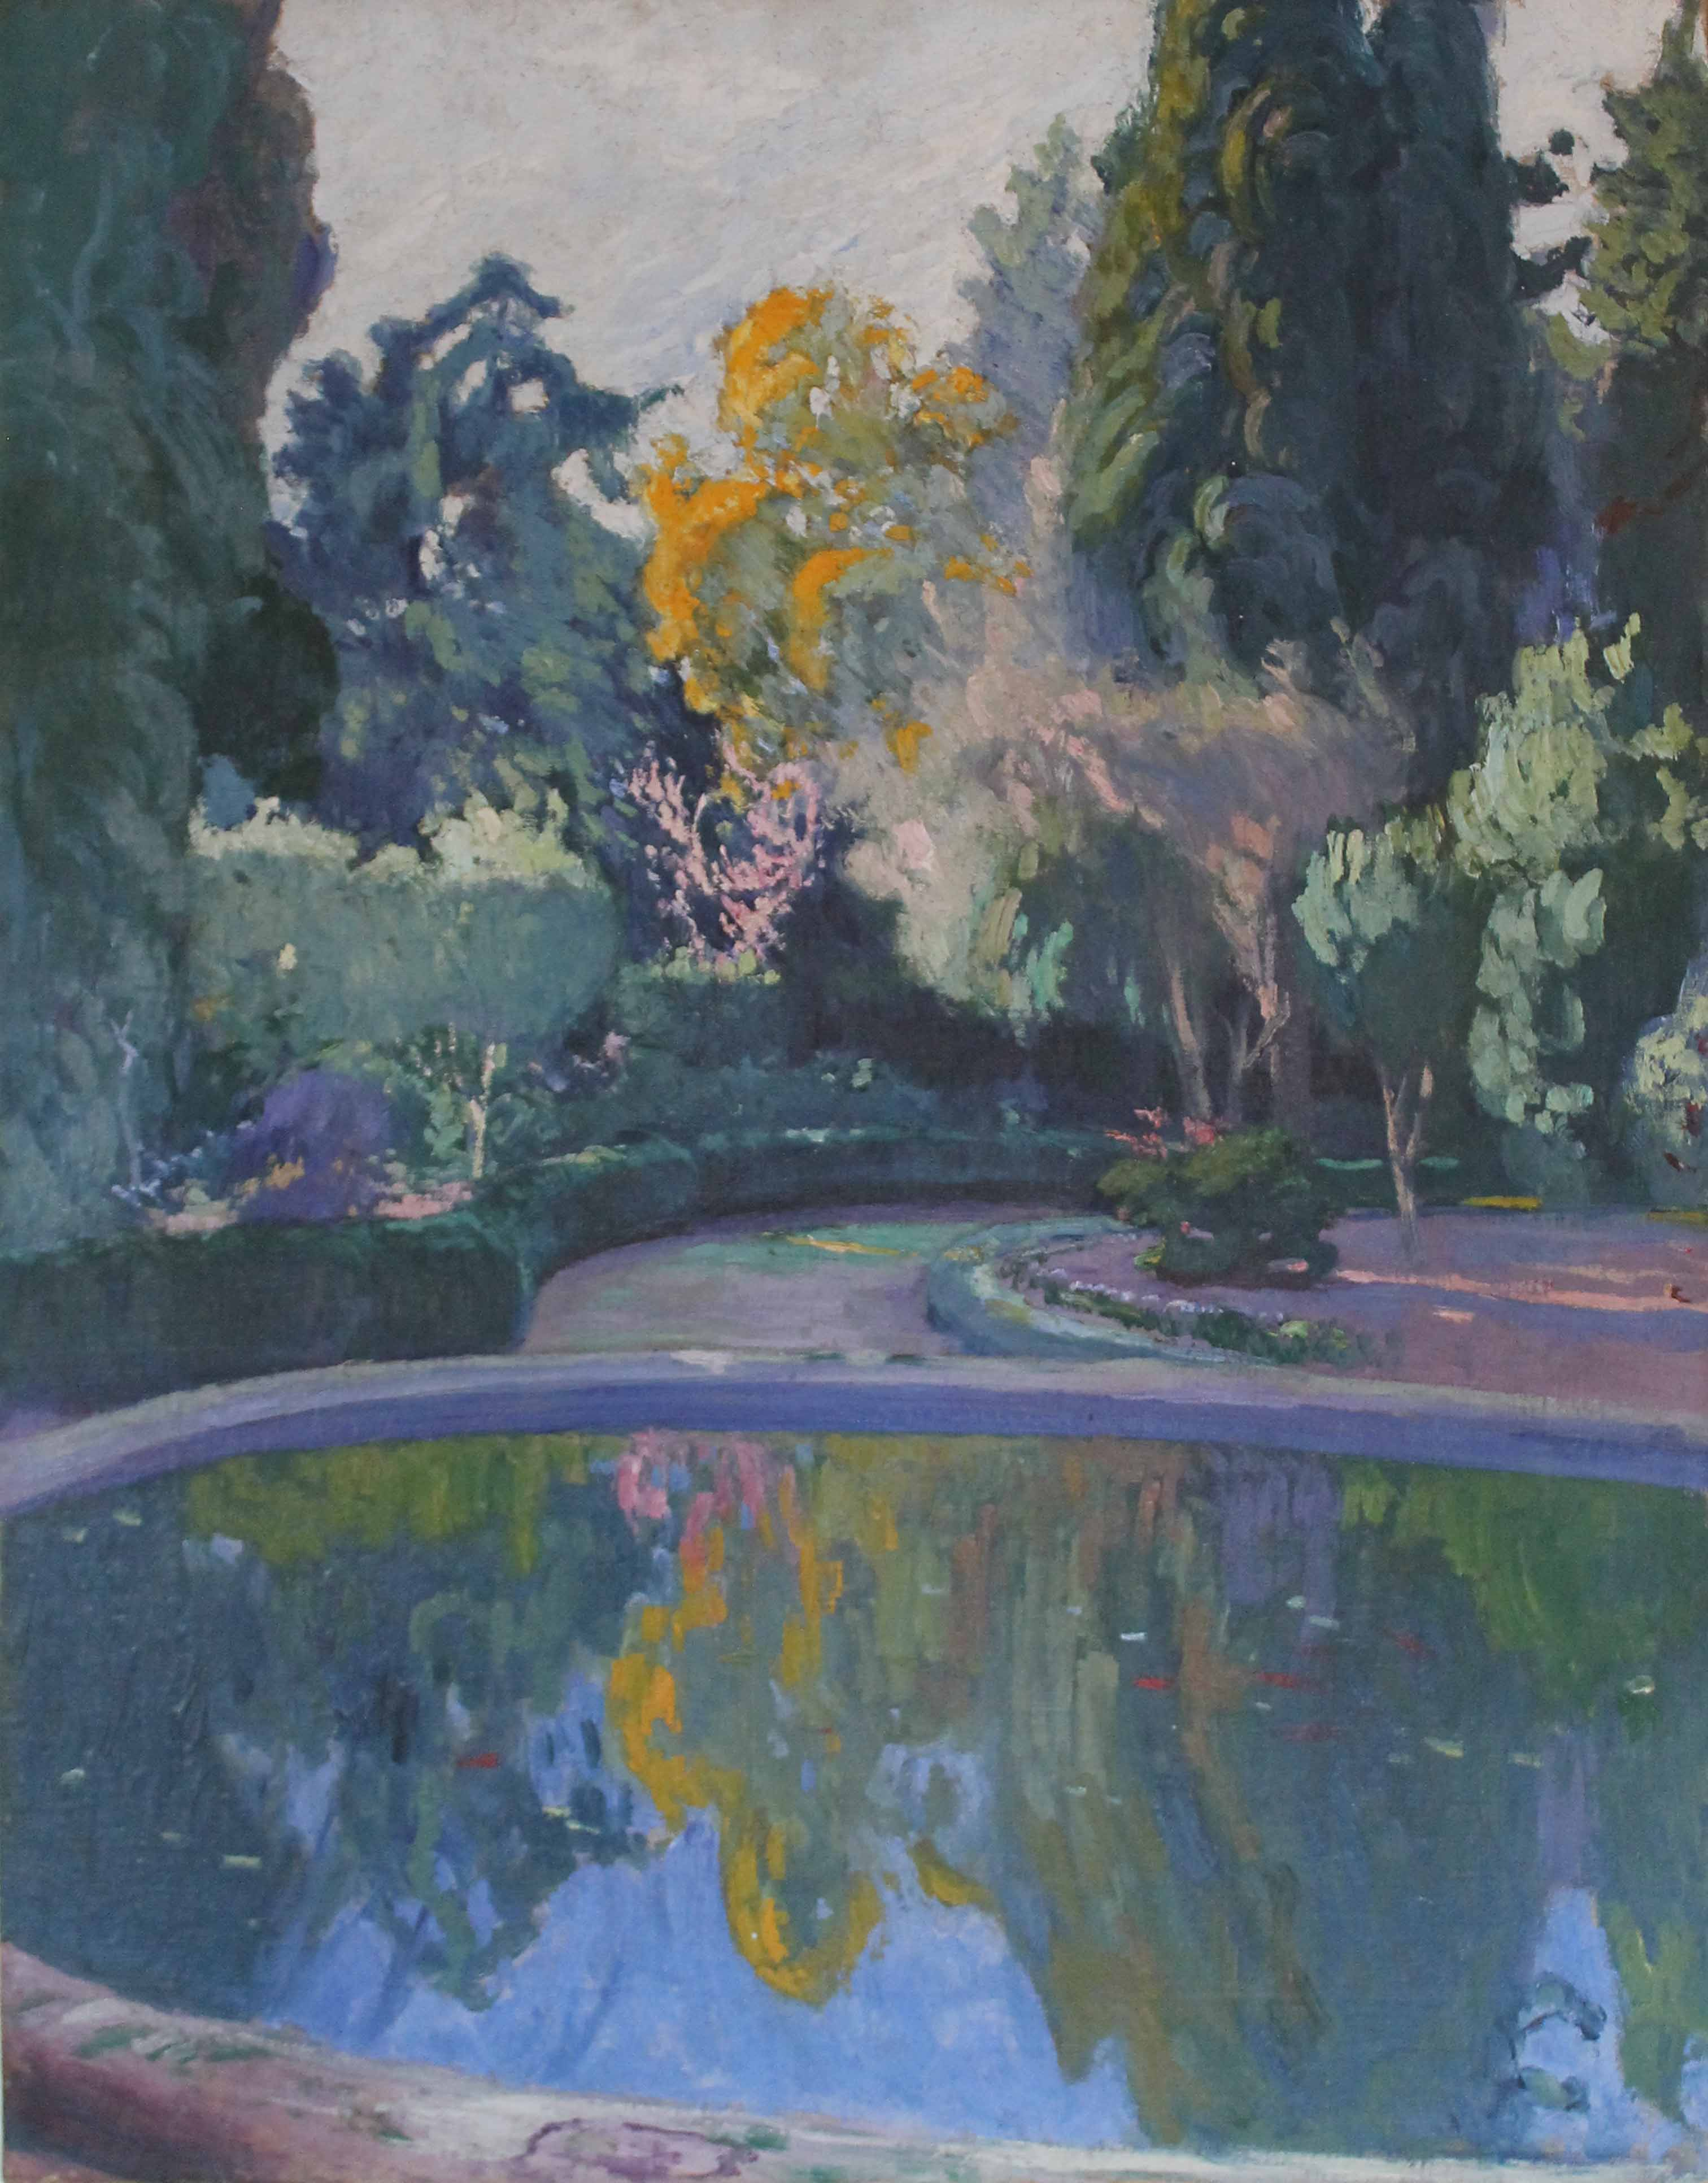 "PEDRO BLANES VIALE (1879 - 1926) ""FUENTE Y JARDIN DEL PRADO"" Oleo sobre tela; 50 x 40 cm. POR CONSULTAS DE PRECIOS, CONTACTE LA GALERIA. FOR PRICE´S ENQUIRIES, PLEASE CONTACT THE GALLERY."